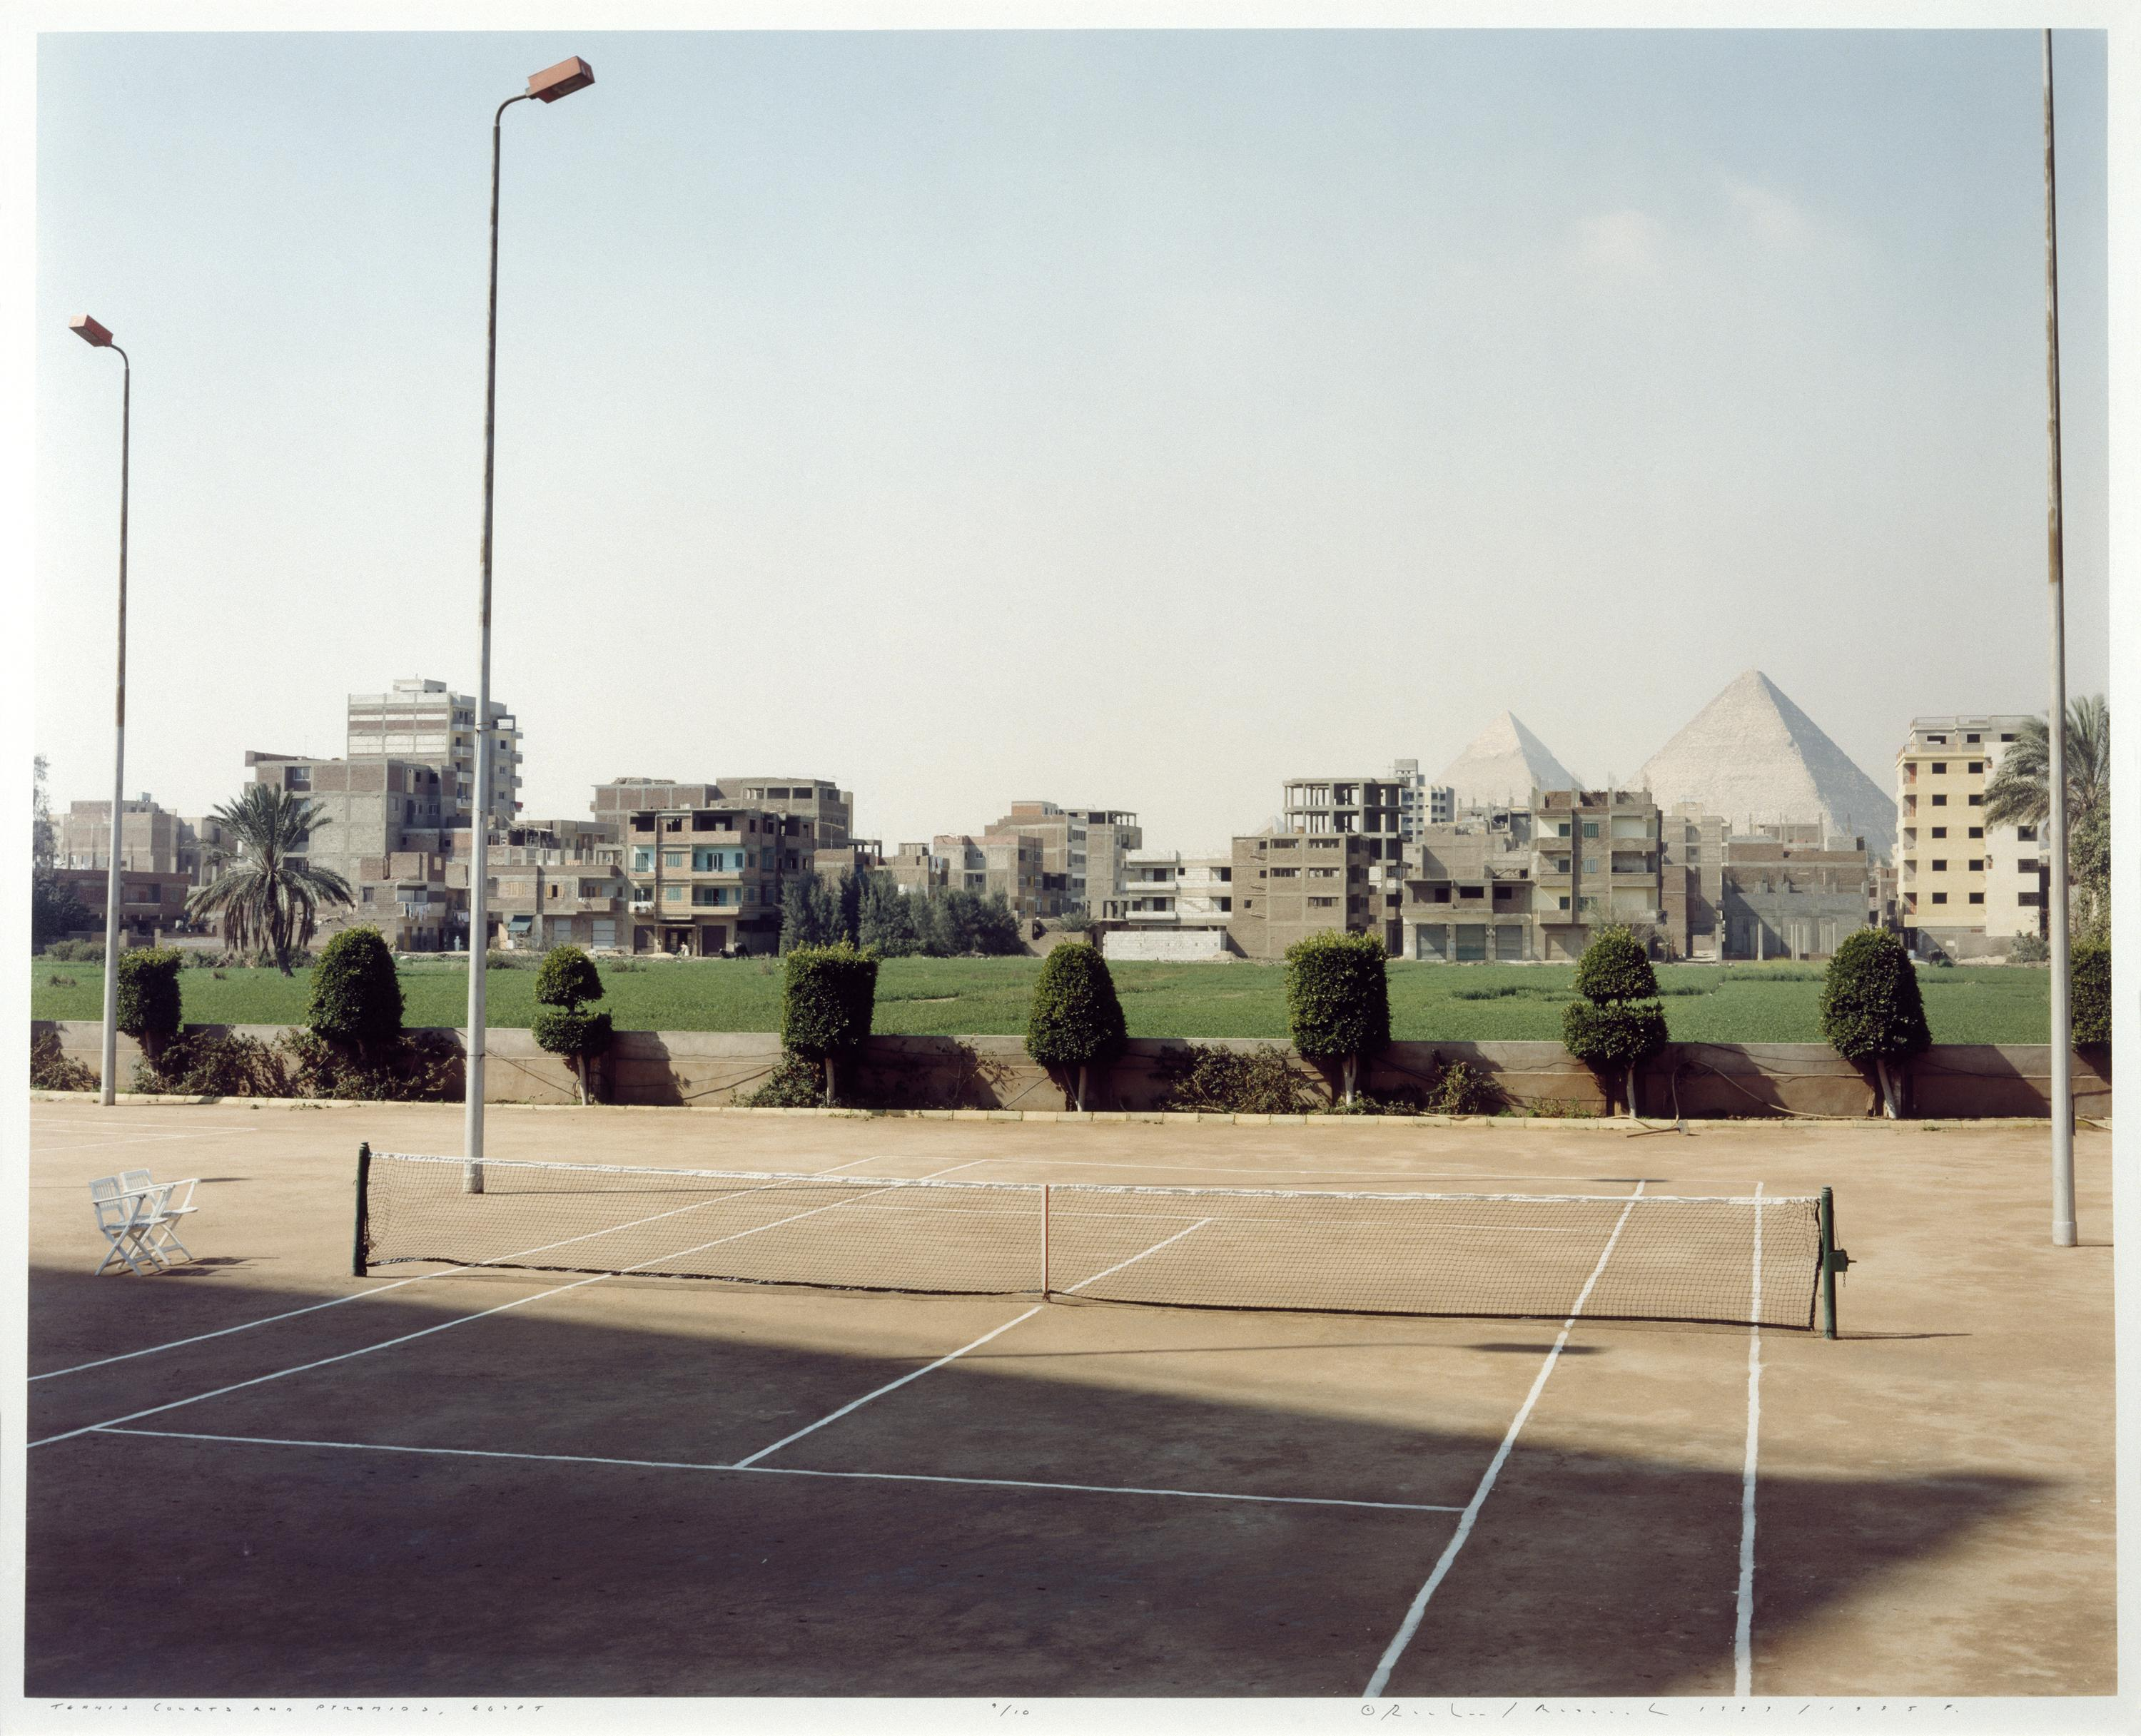 In a complex but quiet scene, a tennis court occupies the foreground. Behind the court are a line of modernist buildings, with the Egyptian pyramids looming in the distance.